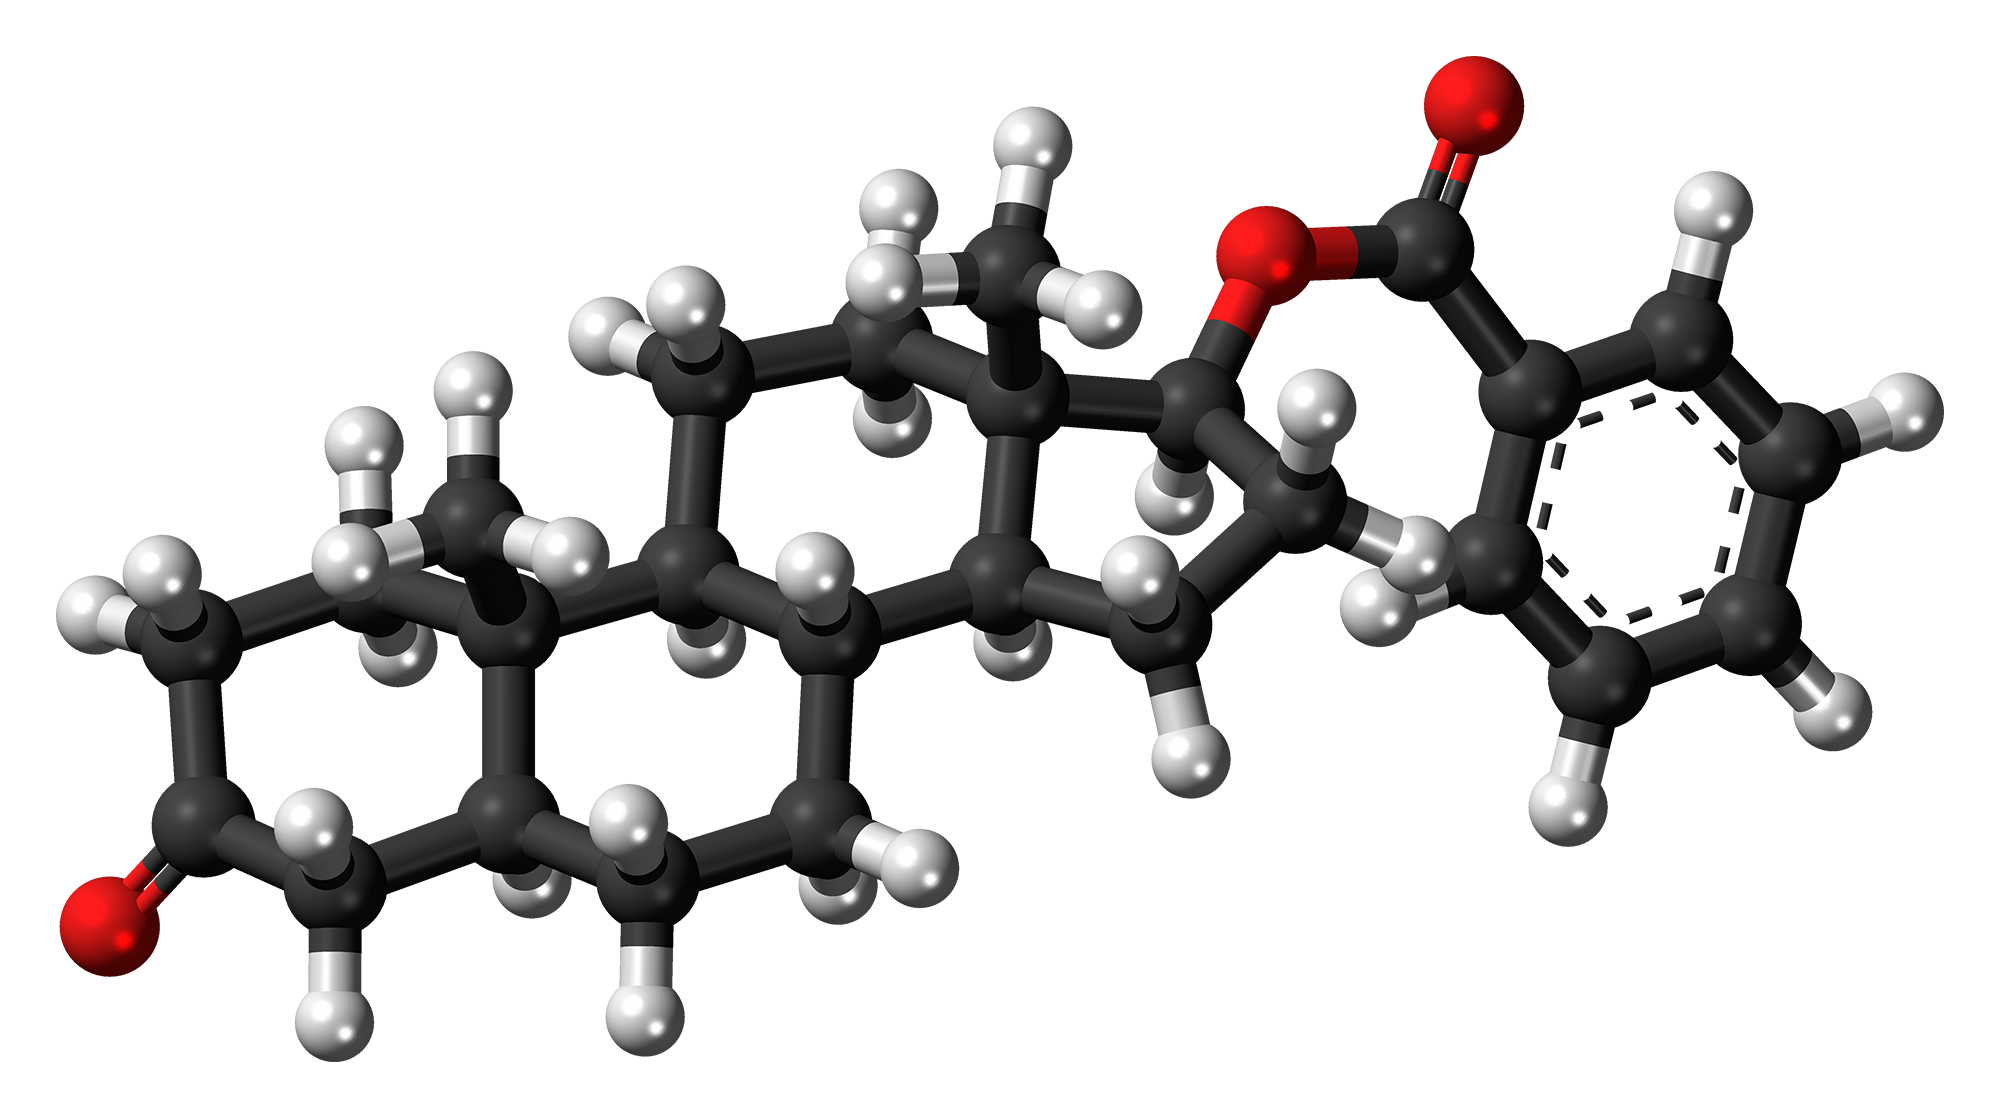 Ball-and-stick model of the androstanolone benzoate molecule, an anabolic-androgenic steroid. Color code:   Carbon, C: black   Hydrogen, H: white